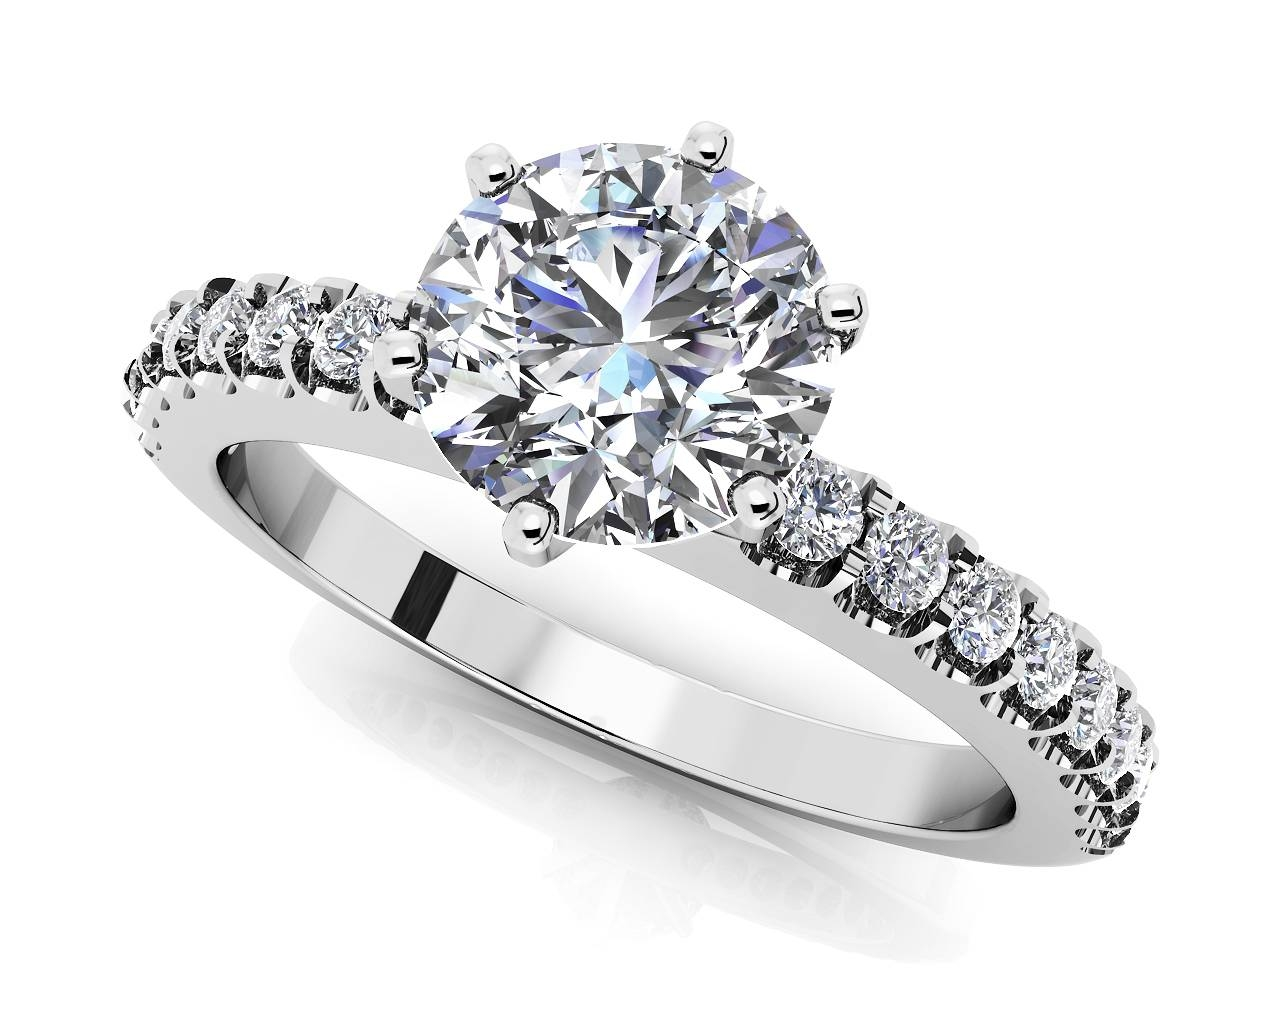 Customize Your Own High Quality Diamond Engagement Ring With Regard To Diamonds Engagement Rings (Gallery 9 of 15)